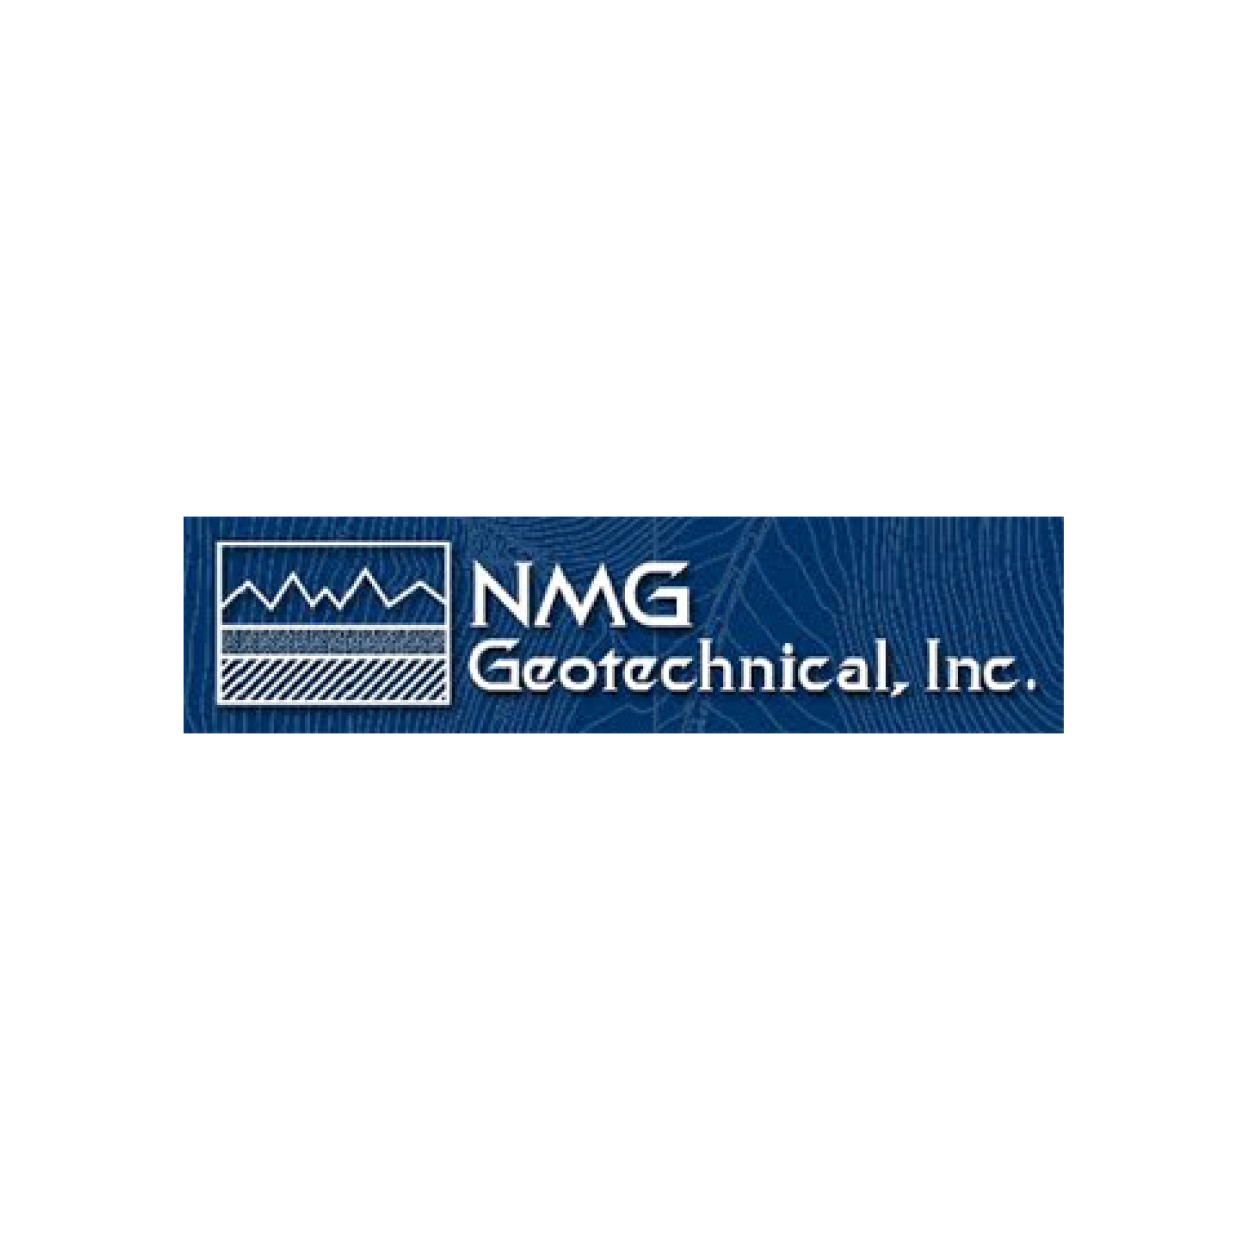 NMG Geotechnical, Inc.